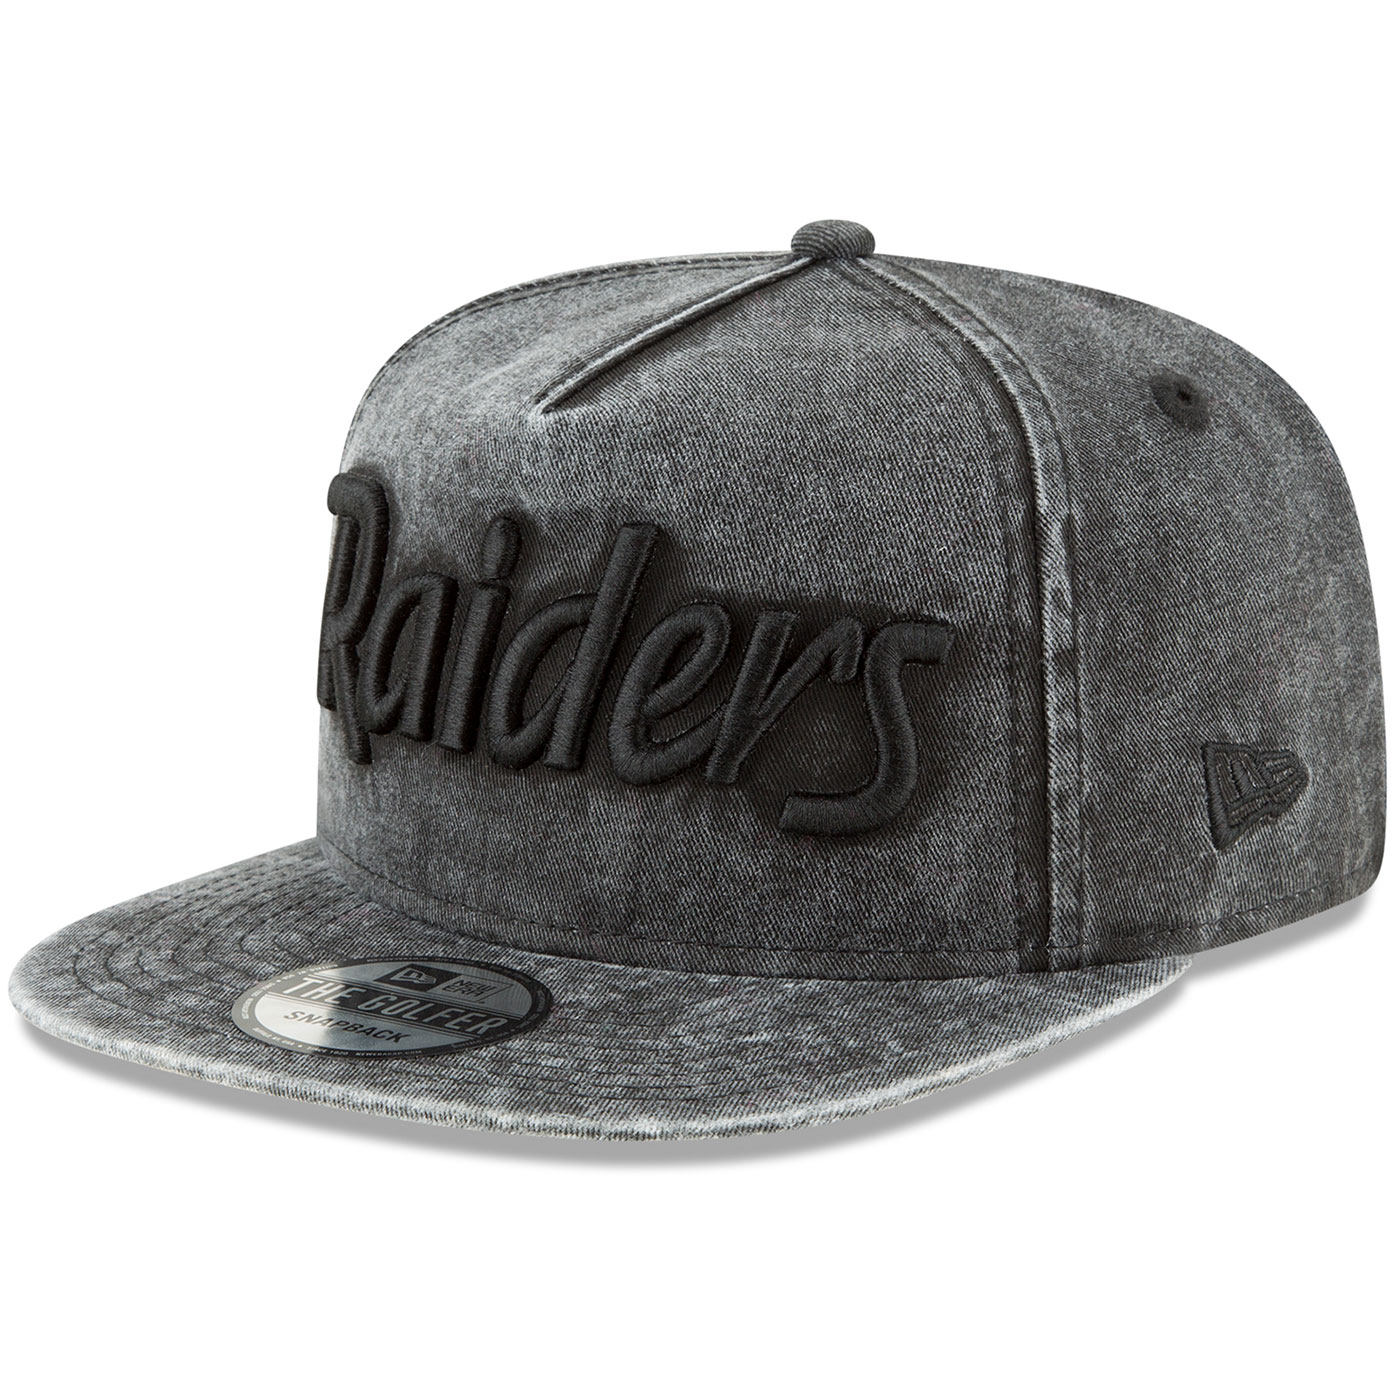 f9f221bd681 Raiders New Era 9Fifty Easy Washed Black Cap